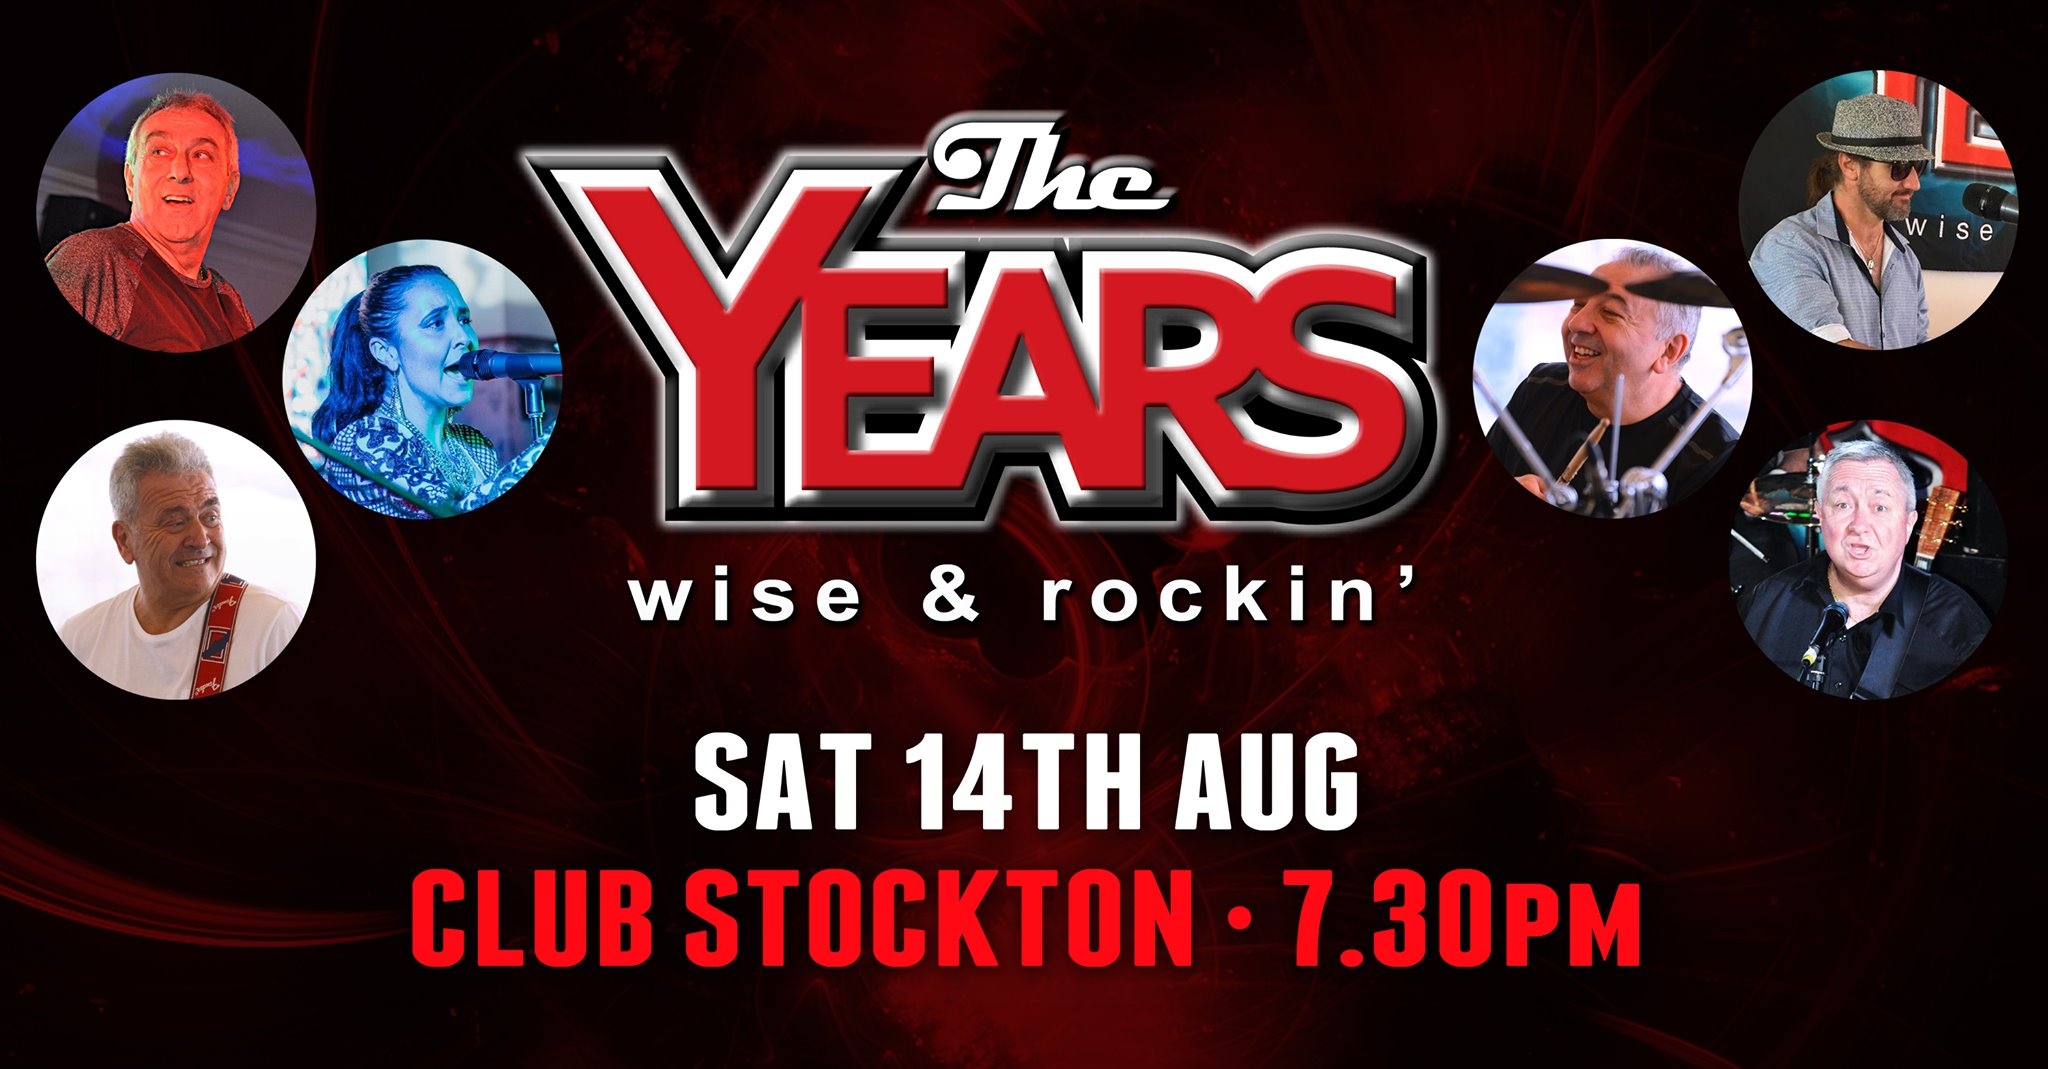 The Years at Club Stockton